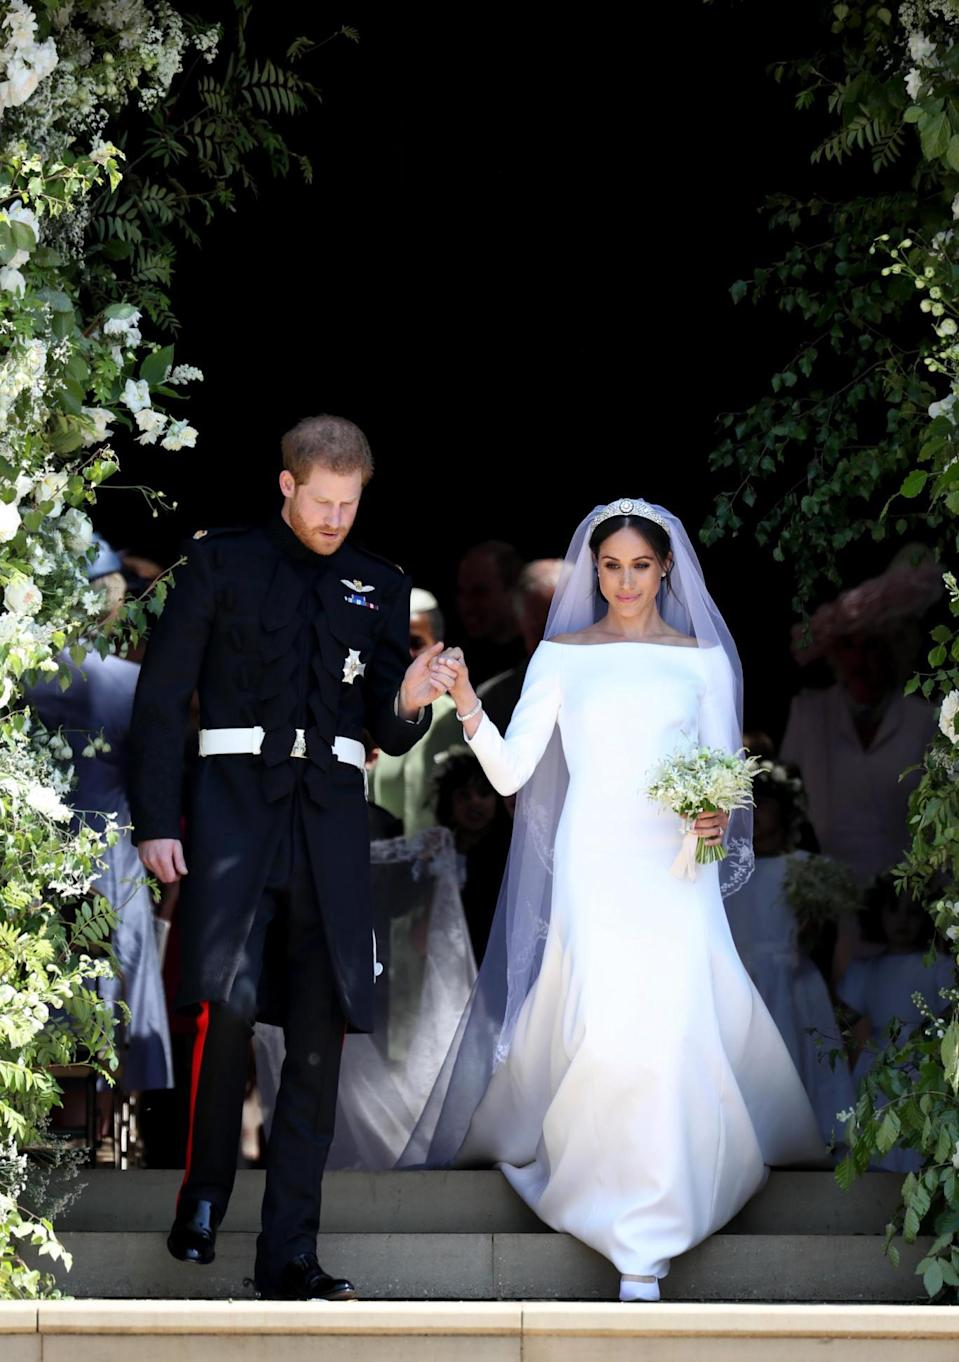 Prince Harry and Meghan Markle leave St George's Chapel in Windsor Castle after their wedding. (PA Wire/PA Images)